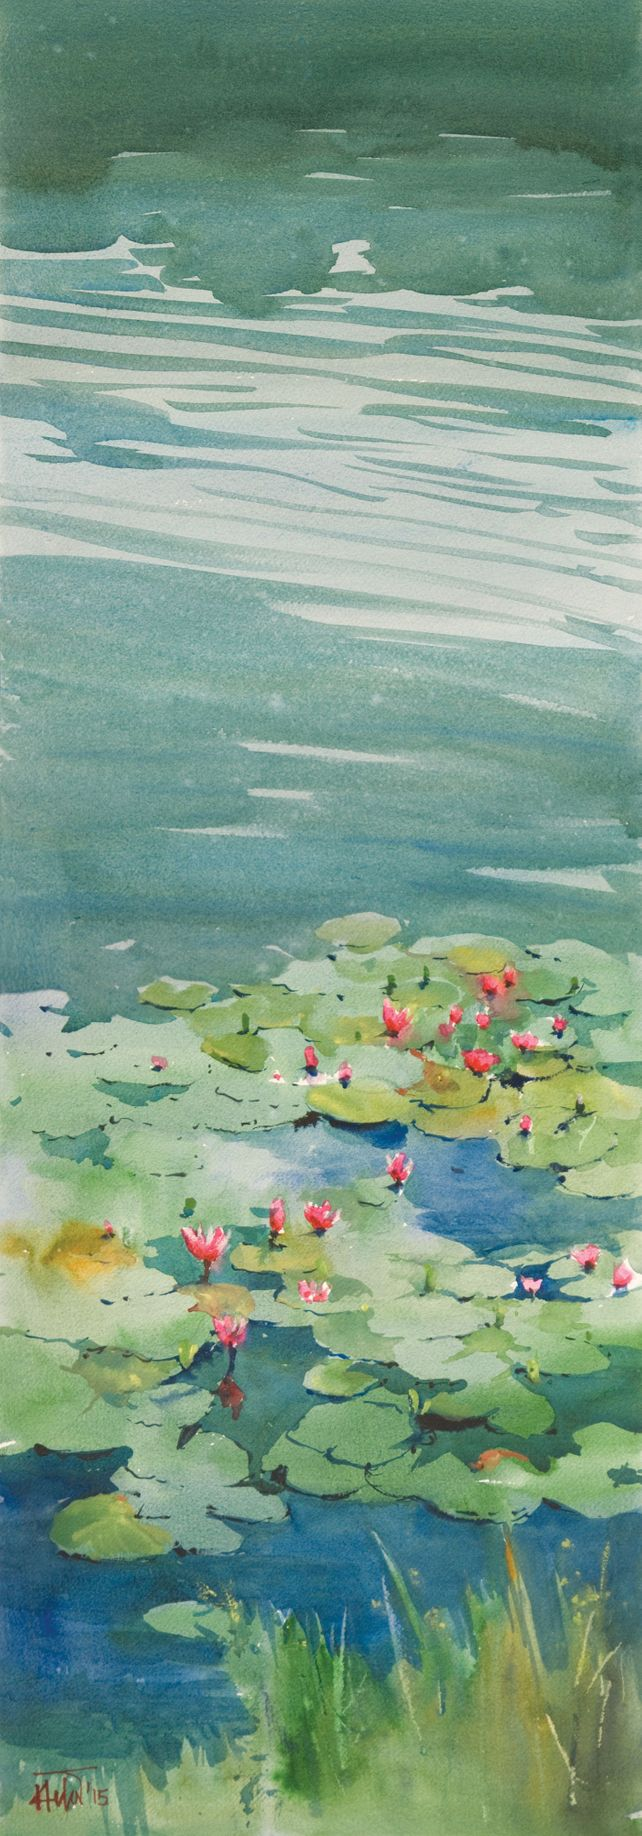 Water lily_02